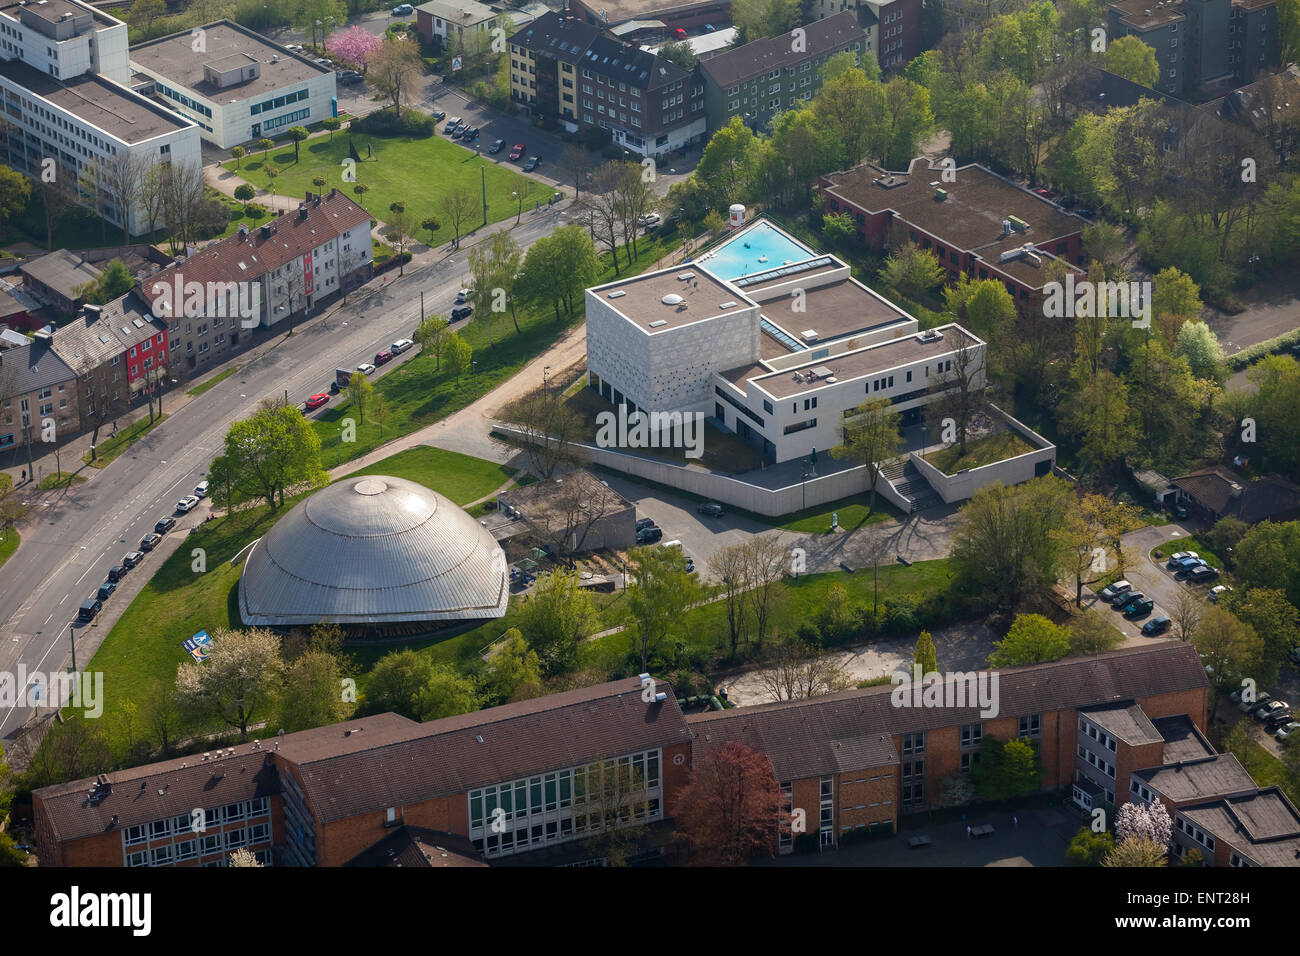 Synagogue with extension next to the Planetarium Bochum, Bochum, Ruhr district, North Rhine-Westphalia, Germany - Stock Image